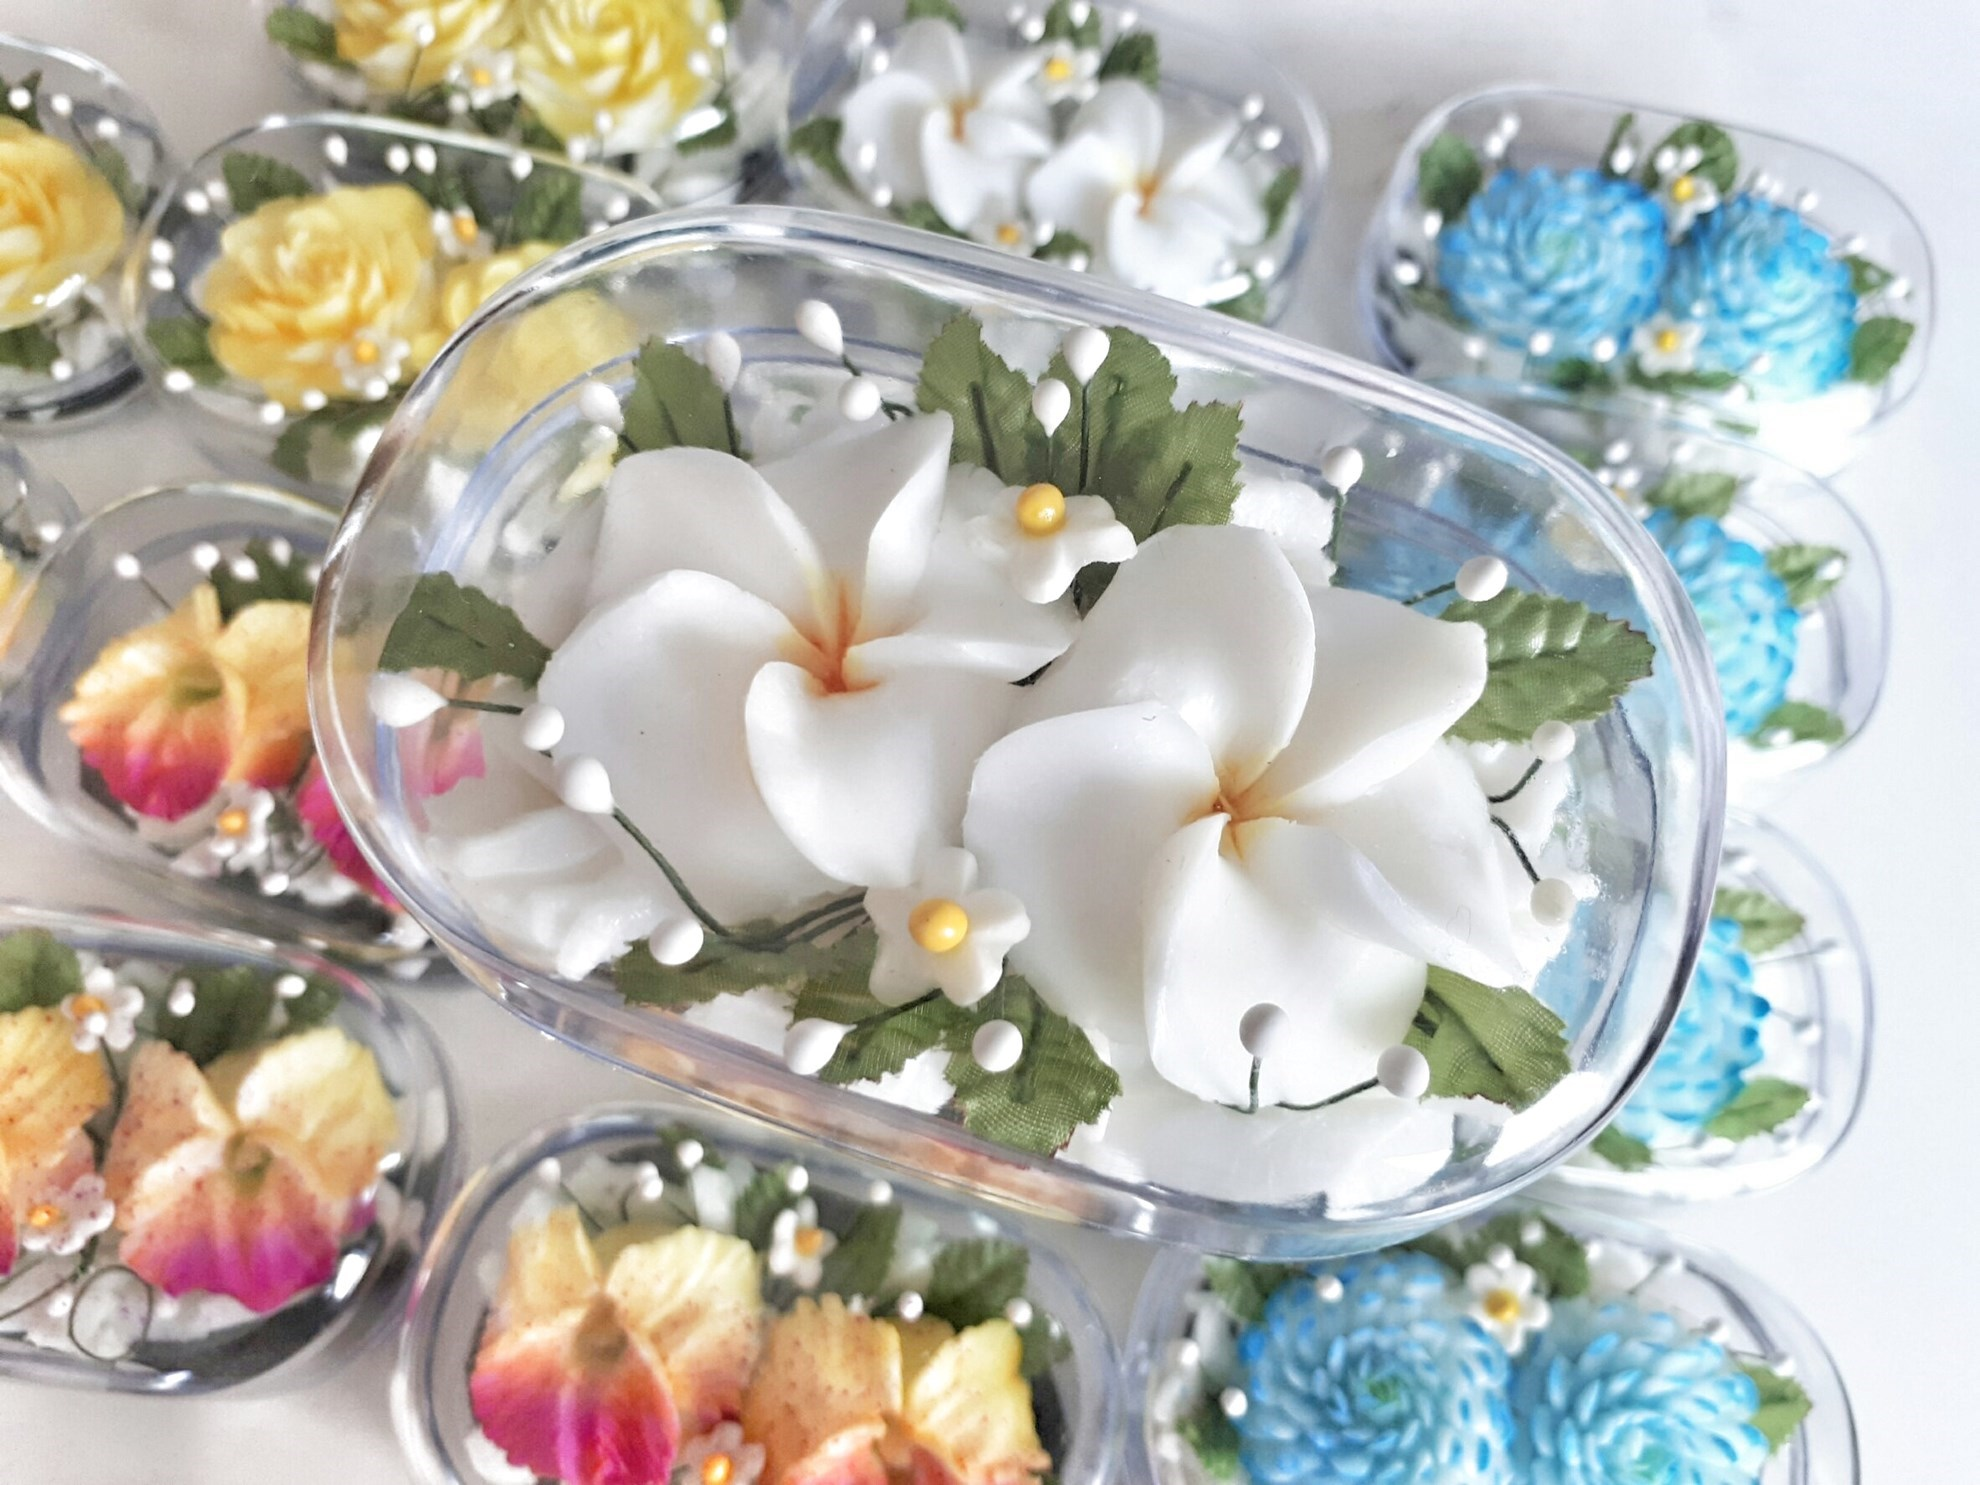 Double White Plumeria Hand Carved in Soap Bar with Jasmine Aroma ...